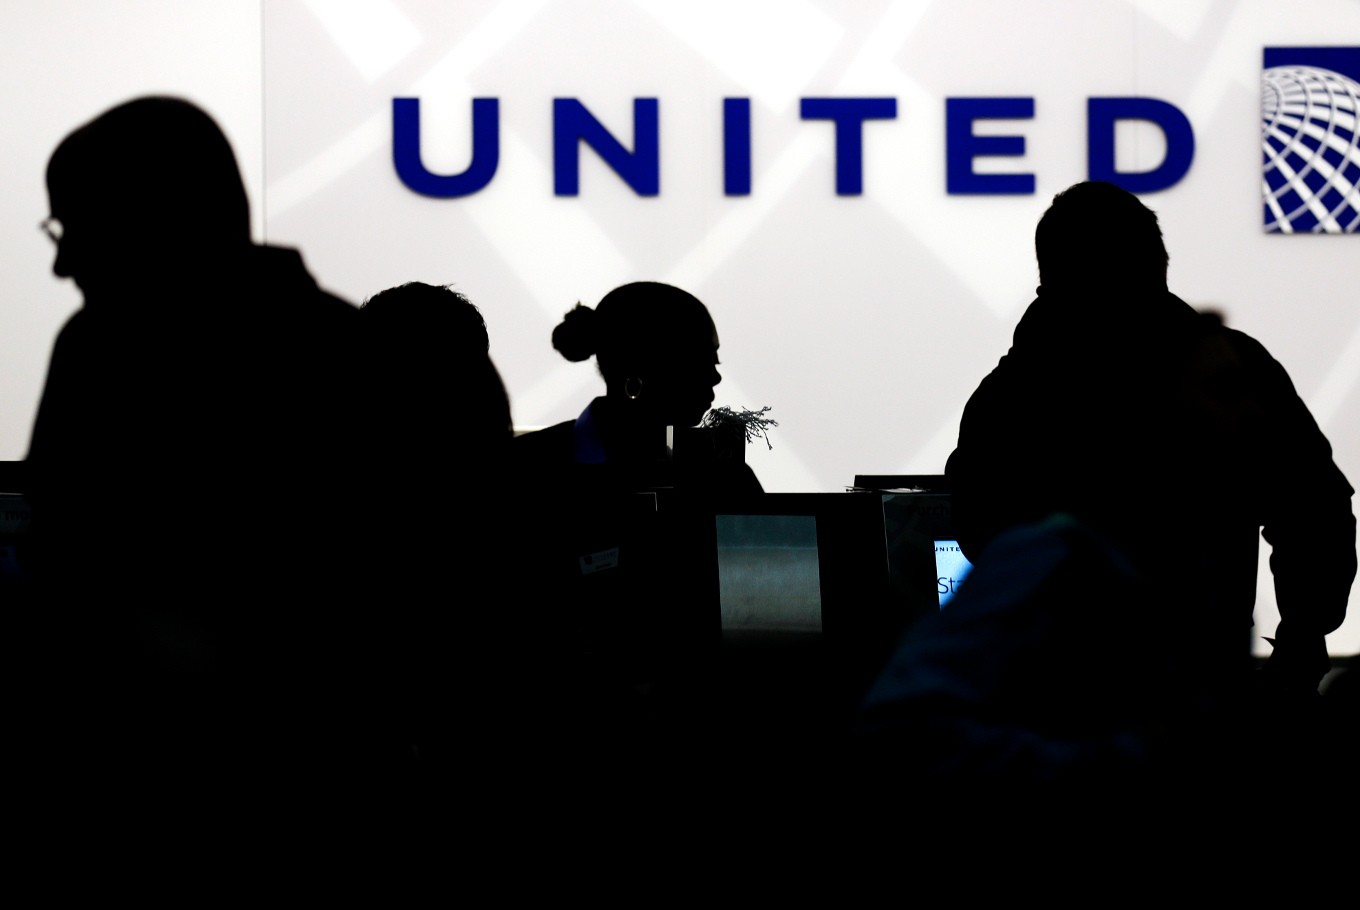 Other airlines join in on United Airlines jokes